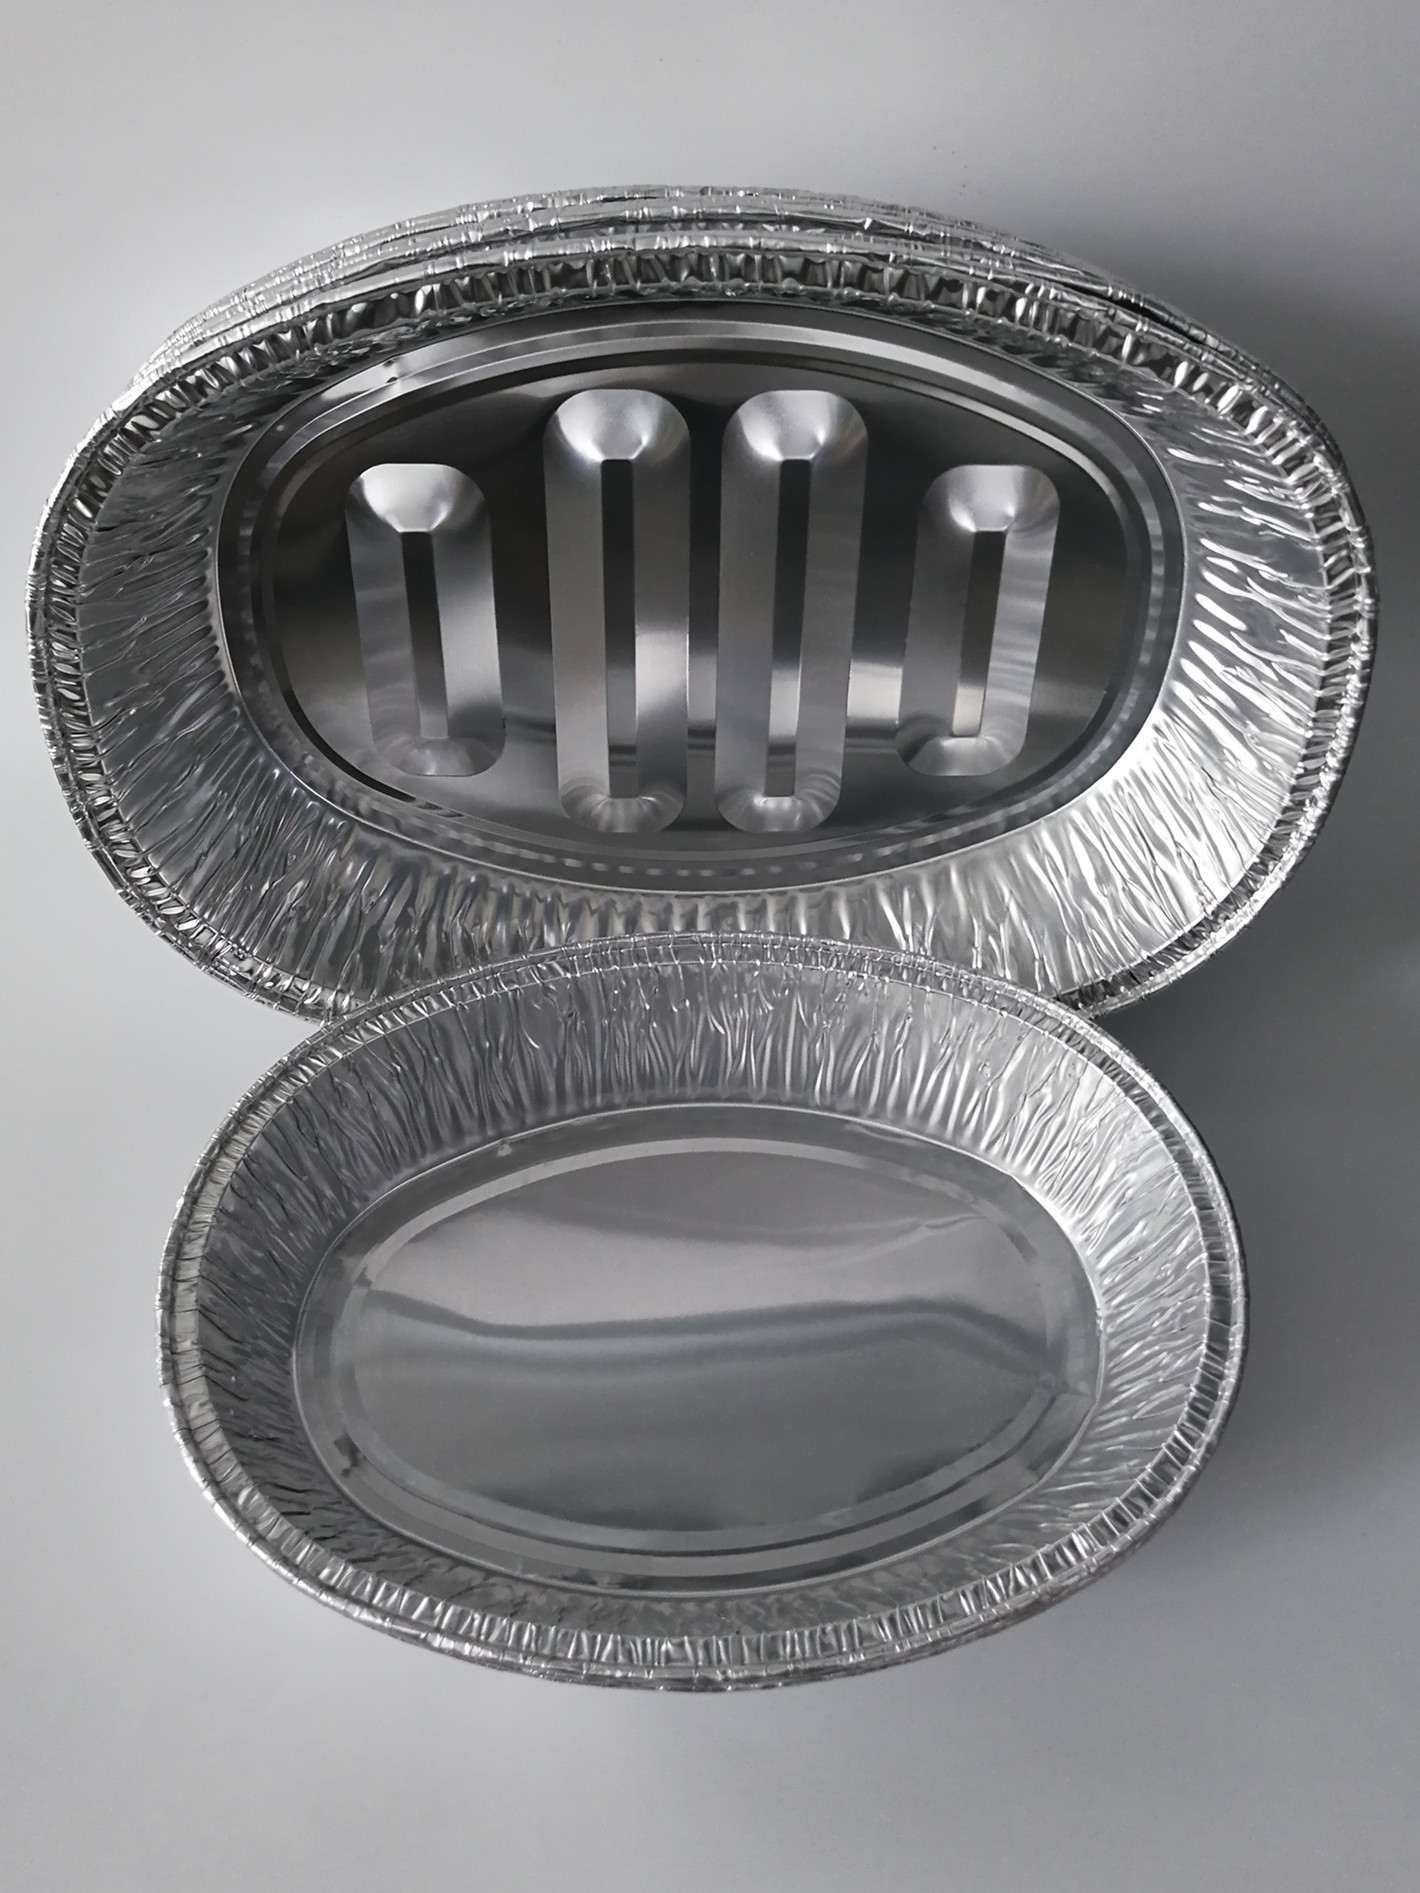 FB1162 //Oval-B 7800ml Roasting Chicken pan //Aluminum Foil oval foil containers